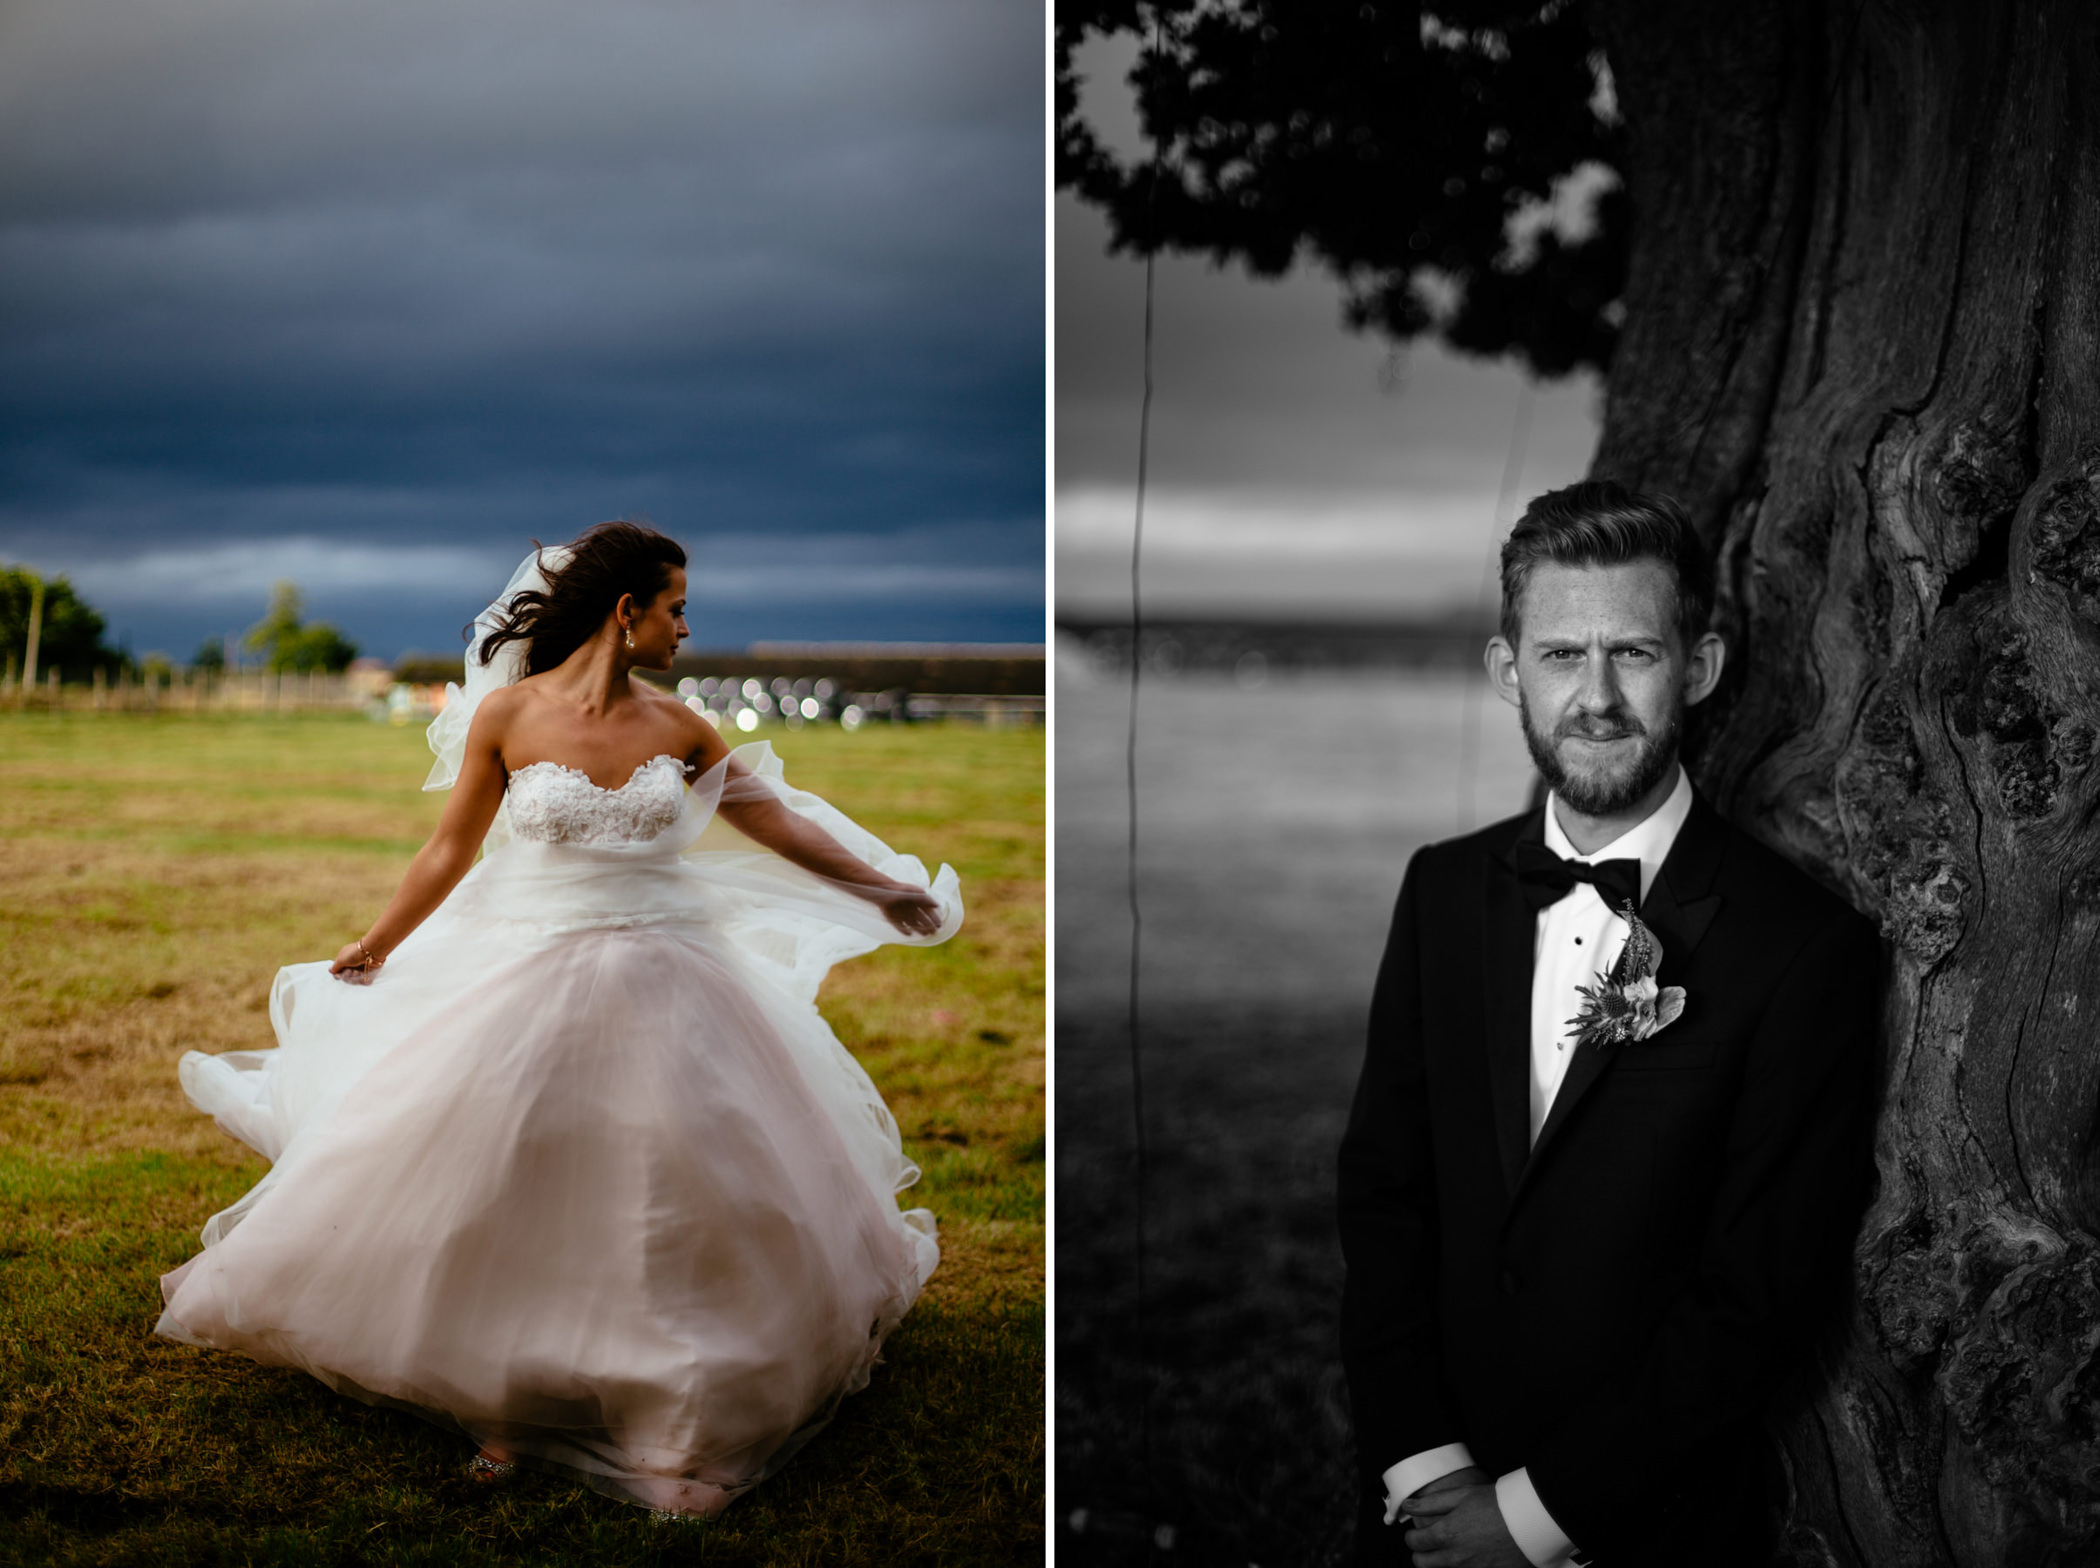 sansom-photography-becky-david-cheshire-wedding-770